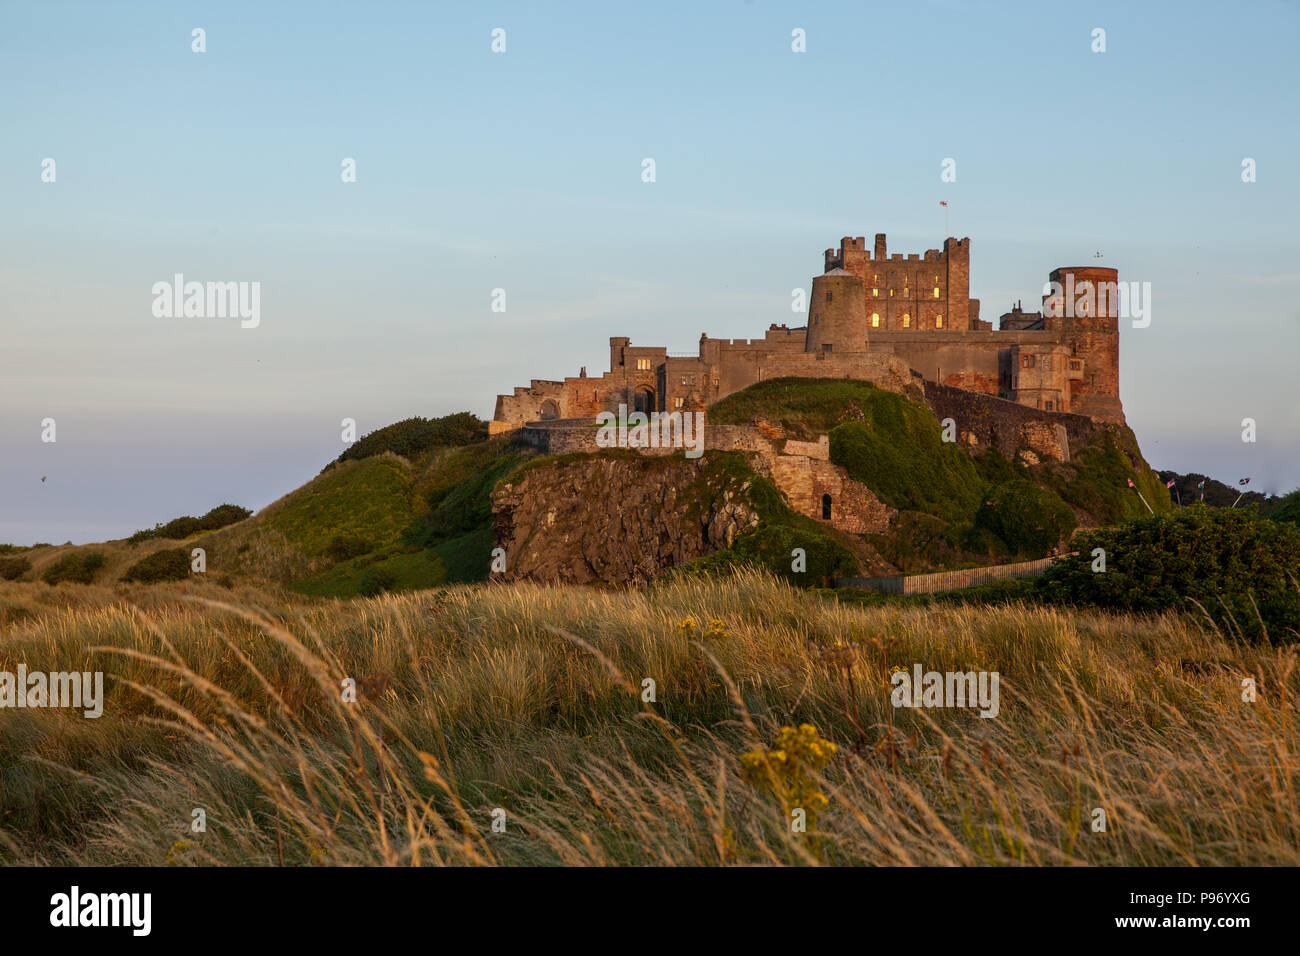 Abend am Bamburgh Castle mit Vollmond Stock Photo